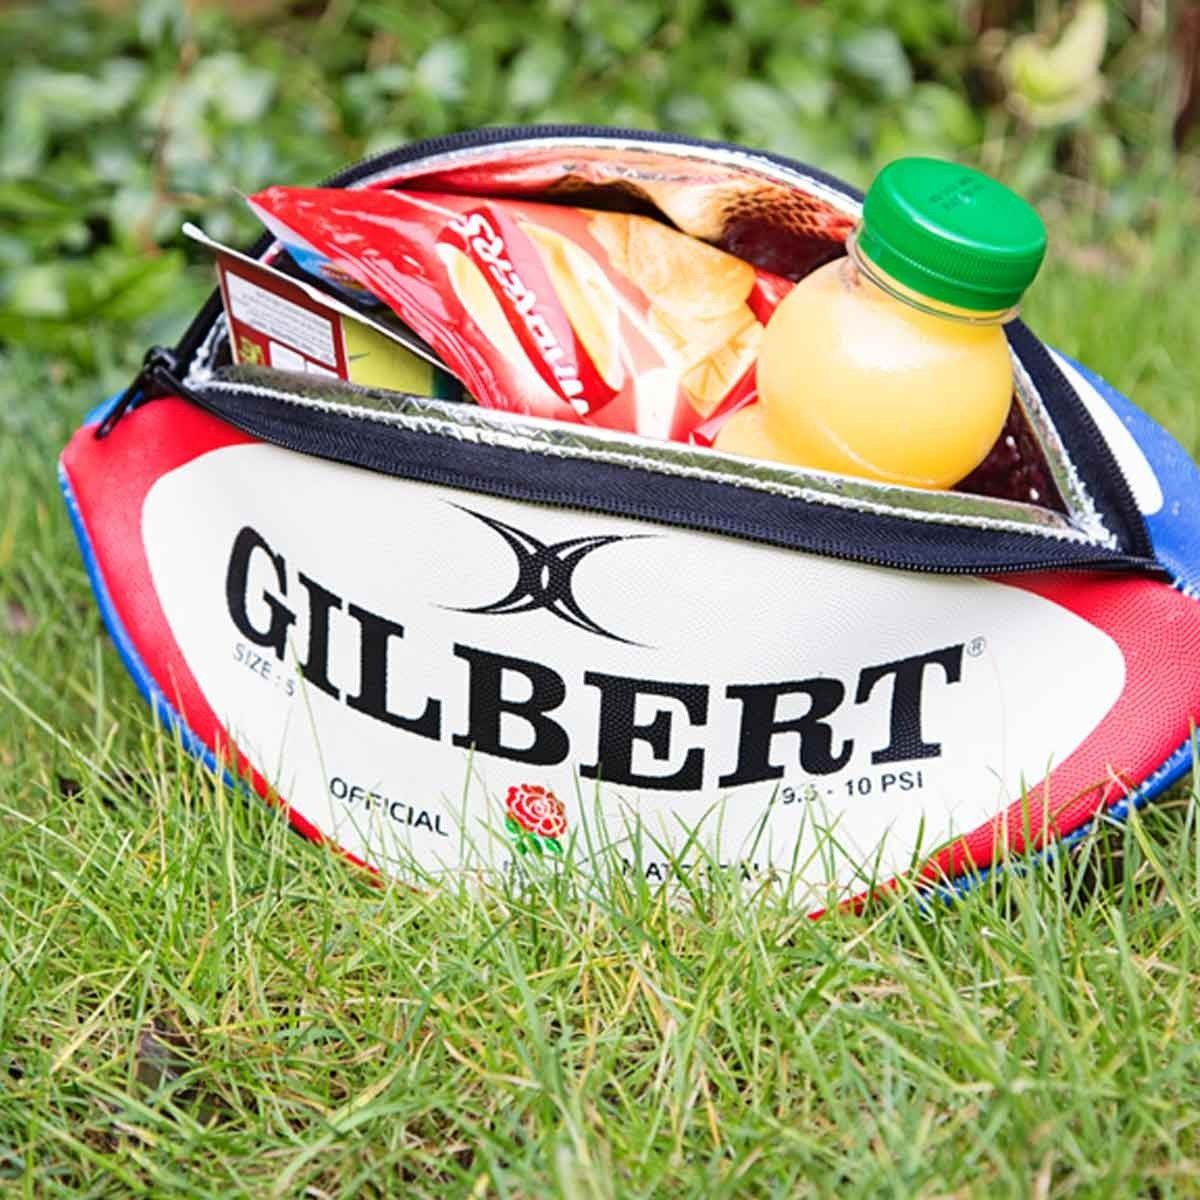 Retro Games Controller Rugby Gifts Rugby Ball England Rugby